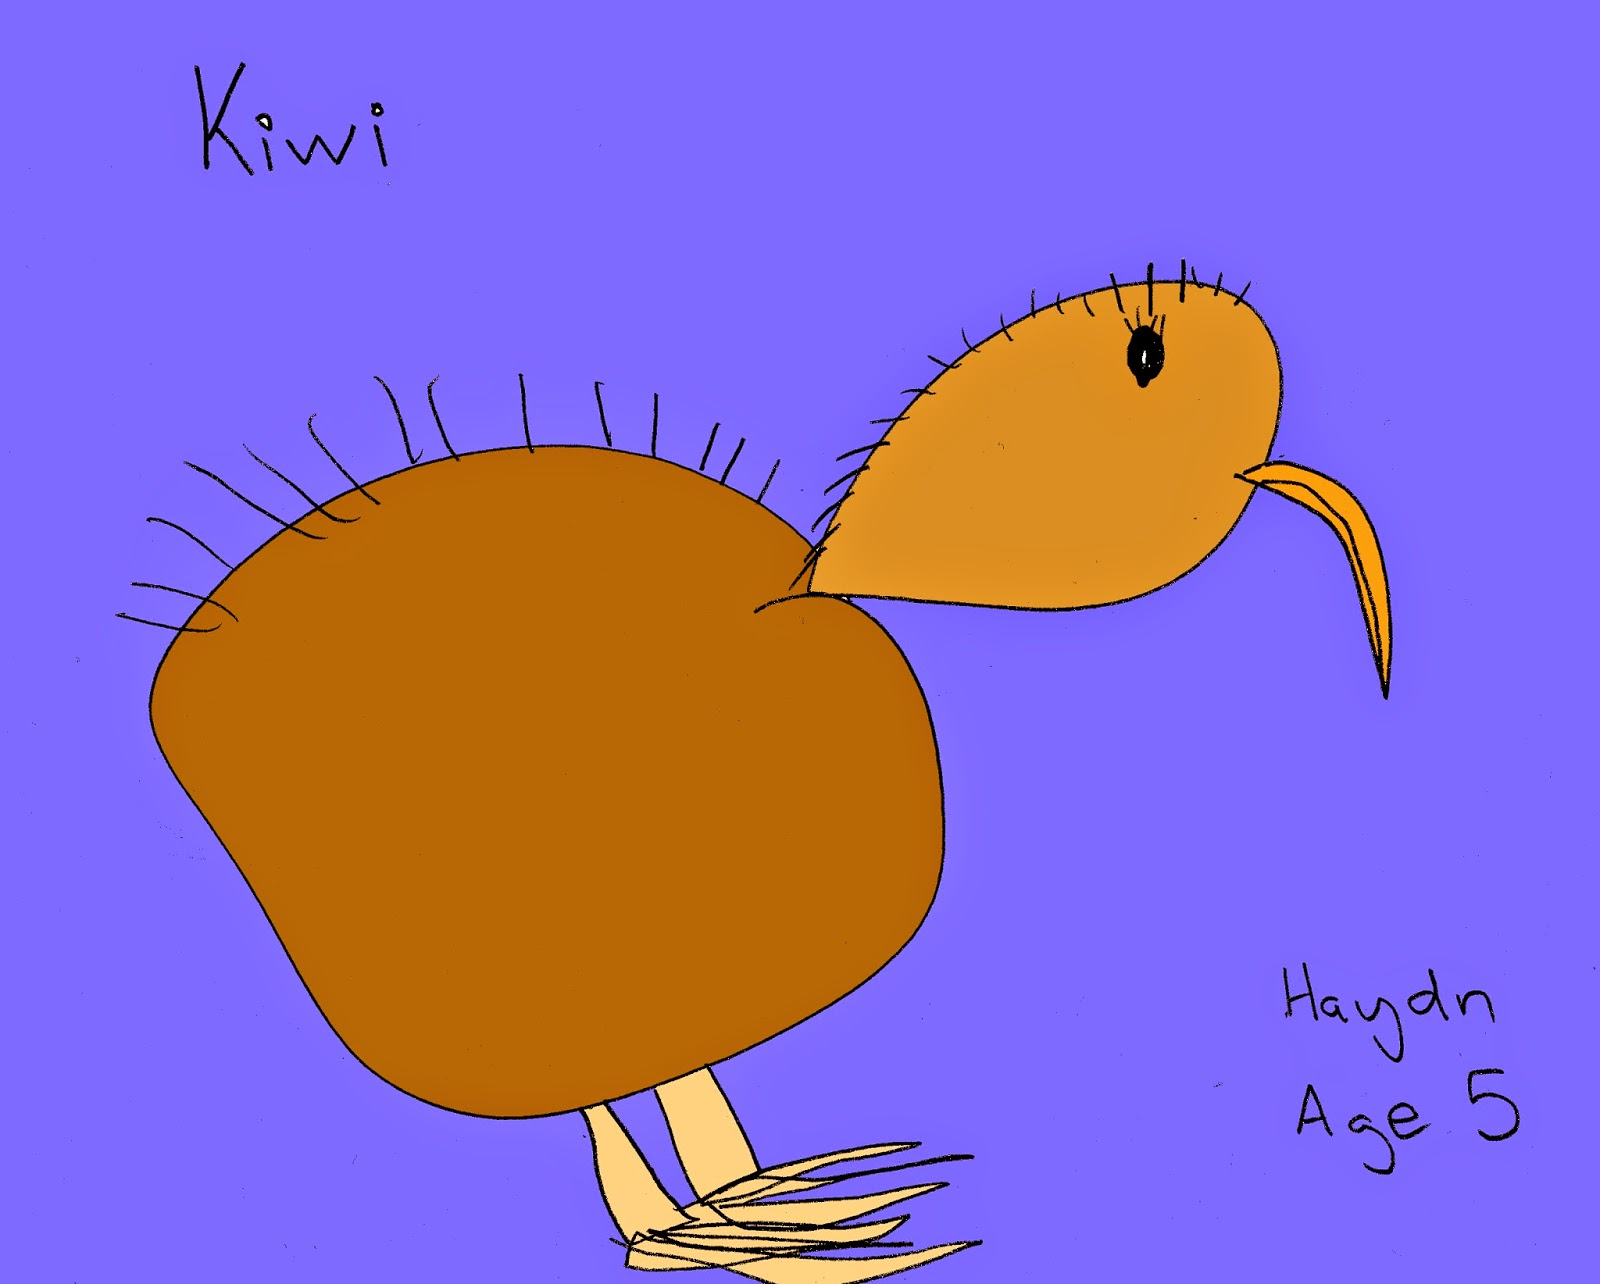 A picture of a Kiwi by Haydn Gedge